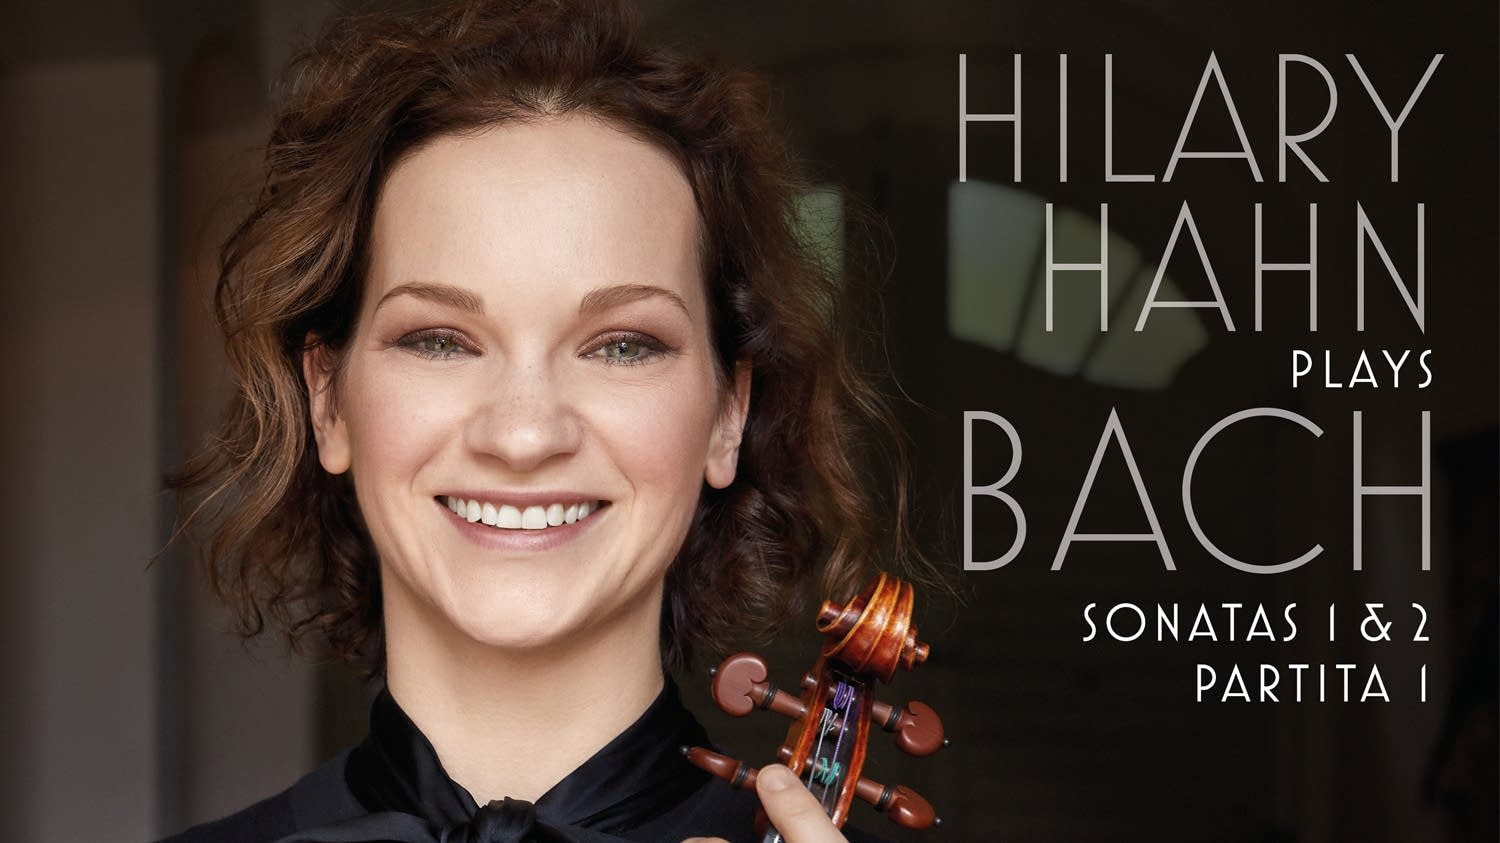 Hilary Hahn's second solo album of music by Bach.